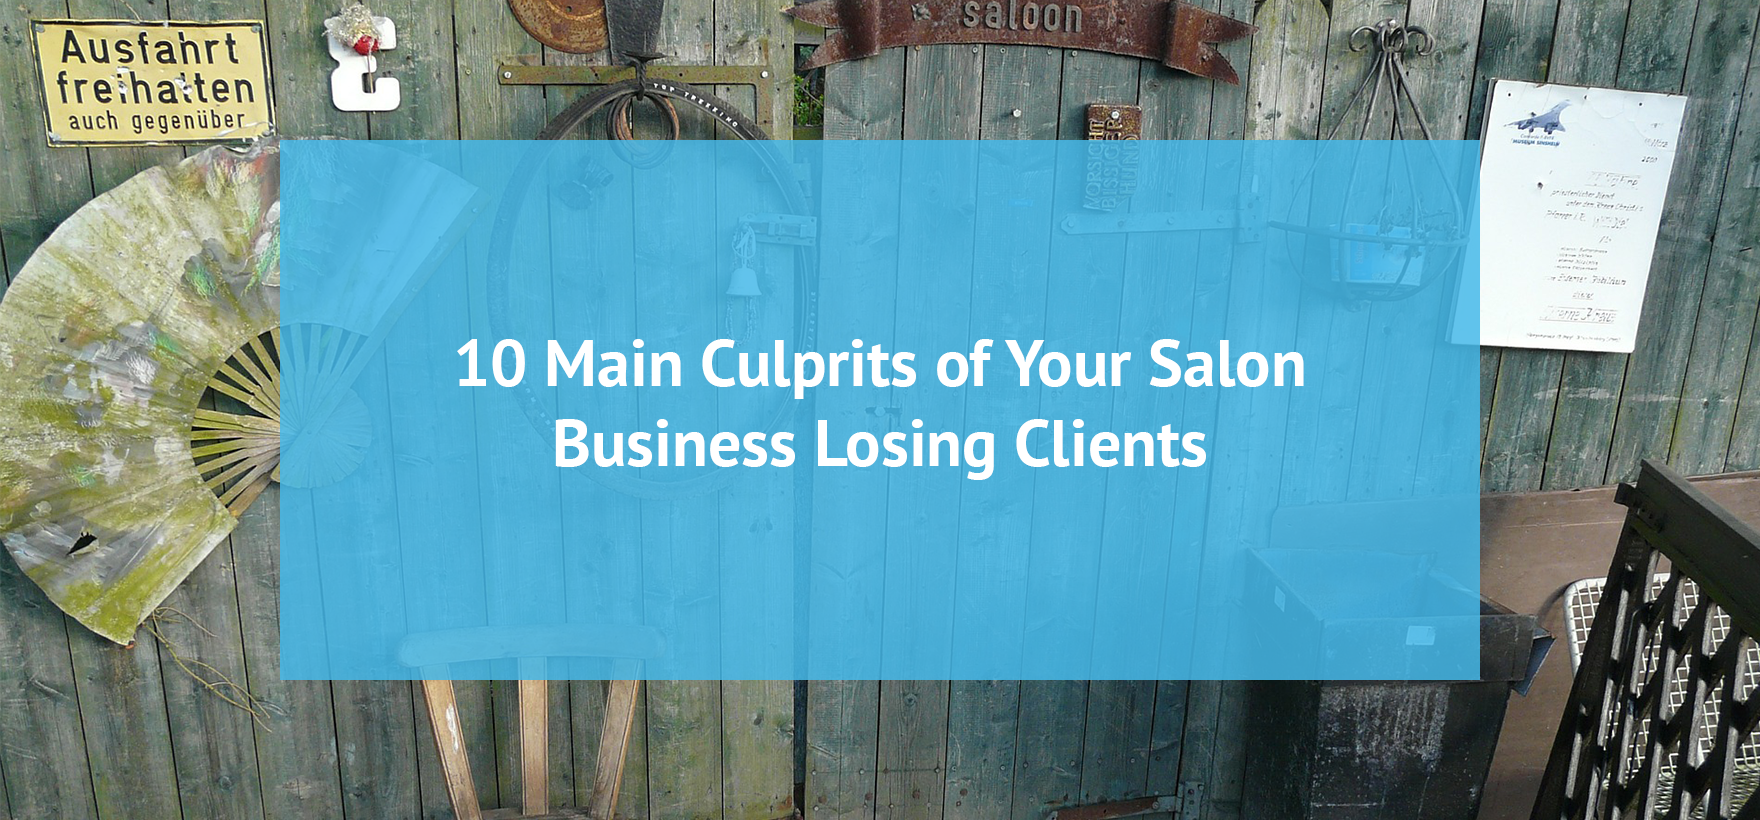 10 Main Culprits of Your Salon Business Losing Clients